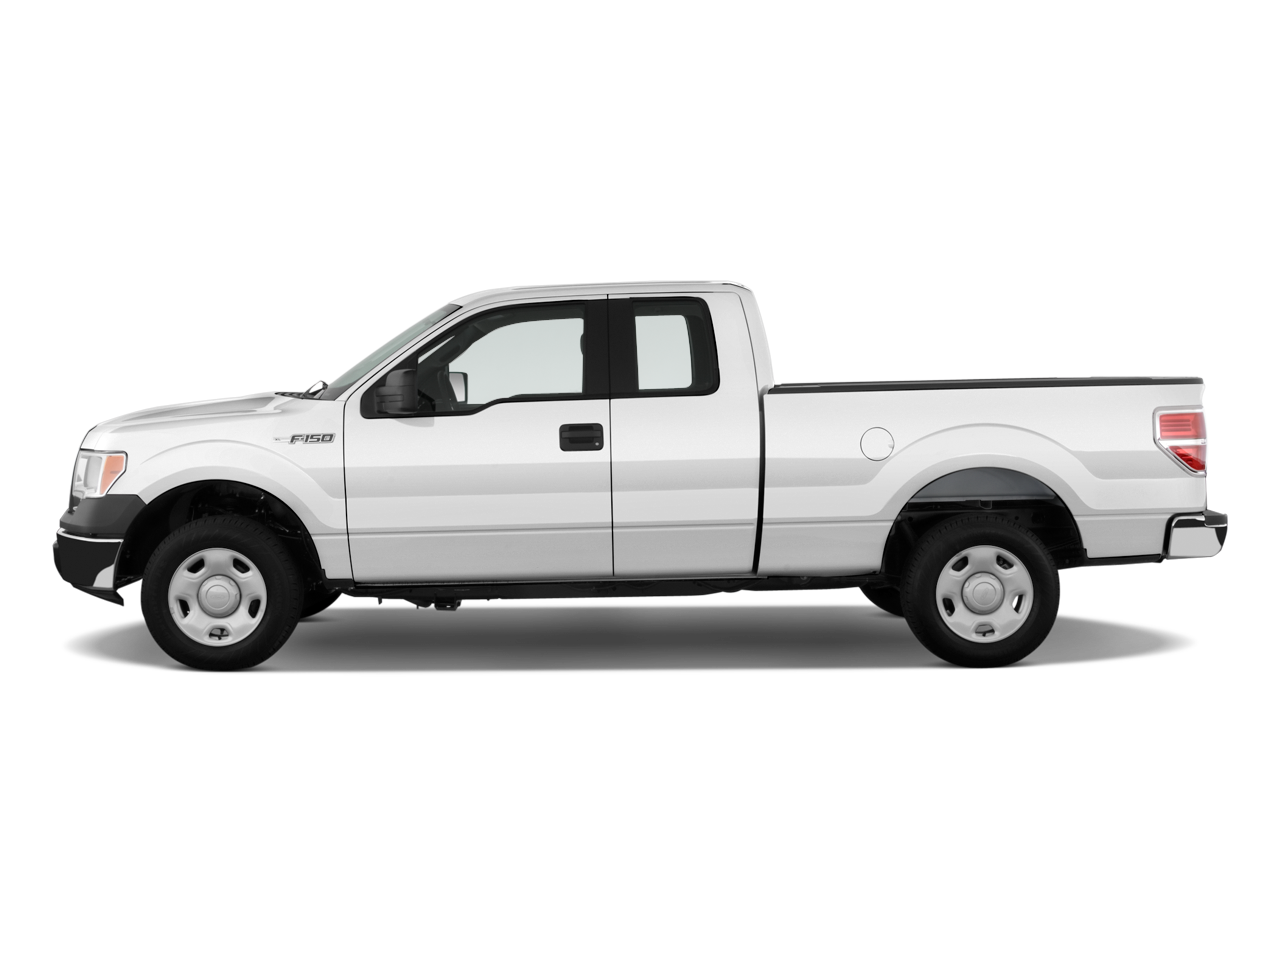 2009 ford f150 new ford pickup truck review automobile. Black Bedroom Furniture Sets. Home Design Ideas